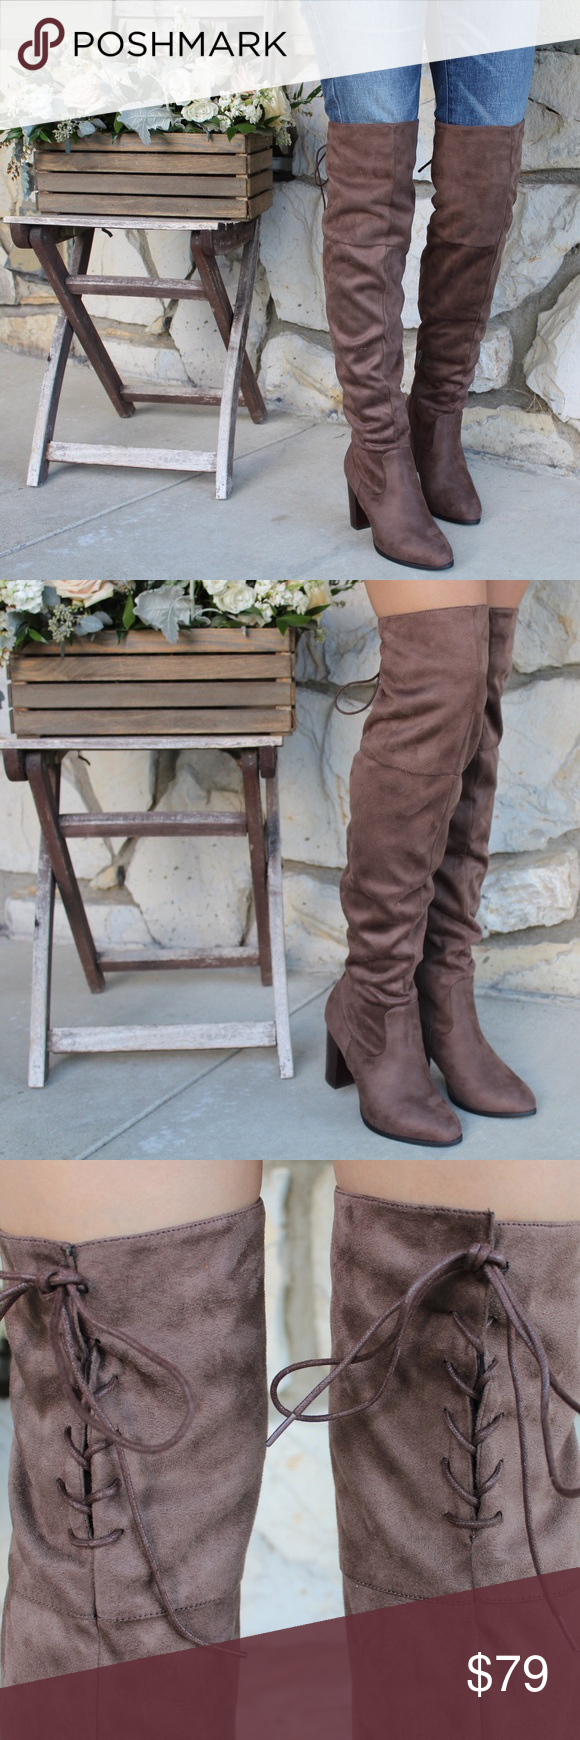 Taupe Stretchy Thigh High Boots 💛 Every Girl Needs a Tall Boot in Her Life! 💛Brand New In Box 💛Heel Height 2.75 Inches💛 Rear Lace Up and Zipper inside💛 True to Size💛 Vegan Materials 💛 Feel free to ask questions! 🌸www.thefairyden.com🌸 The Fairy Den Shoes Heeled Boots